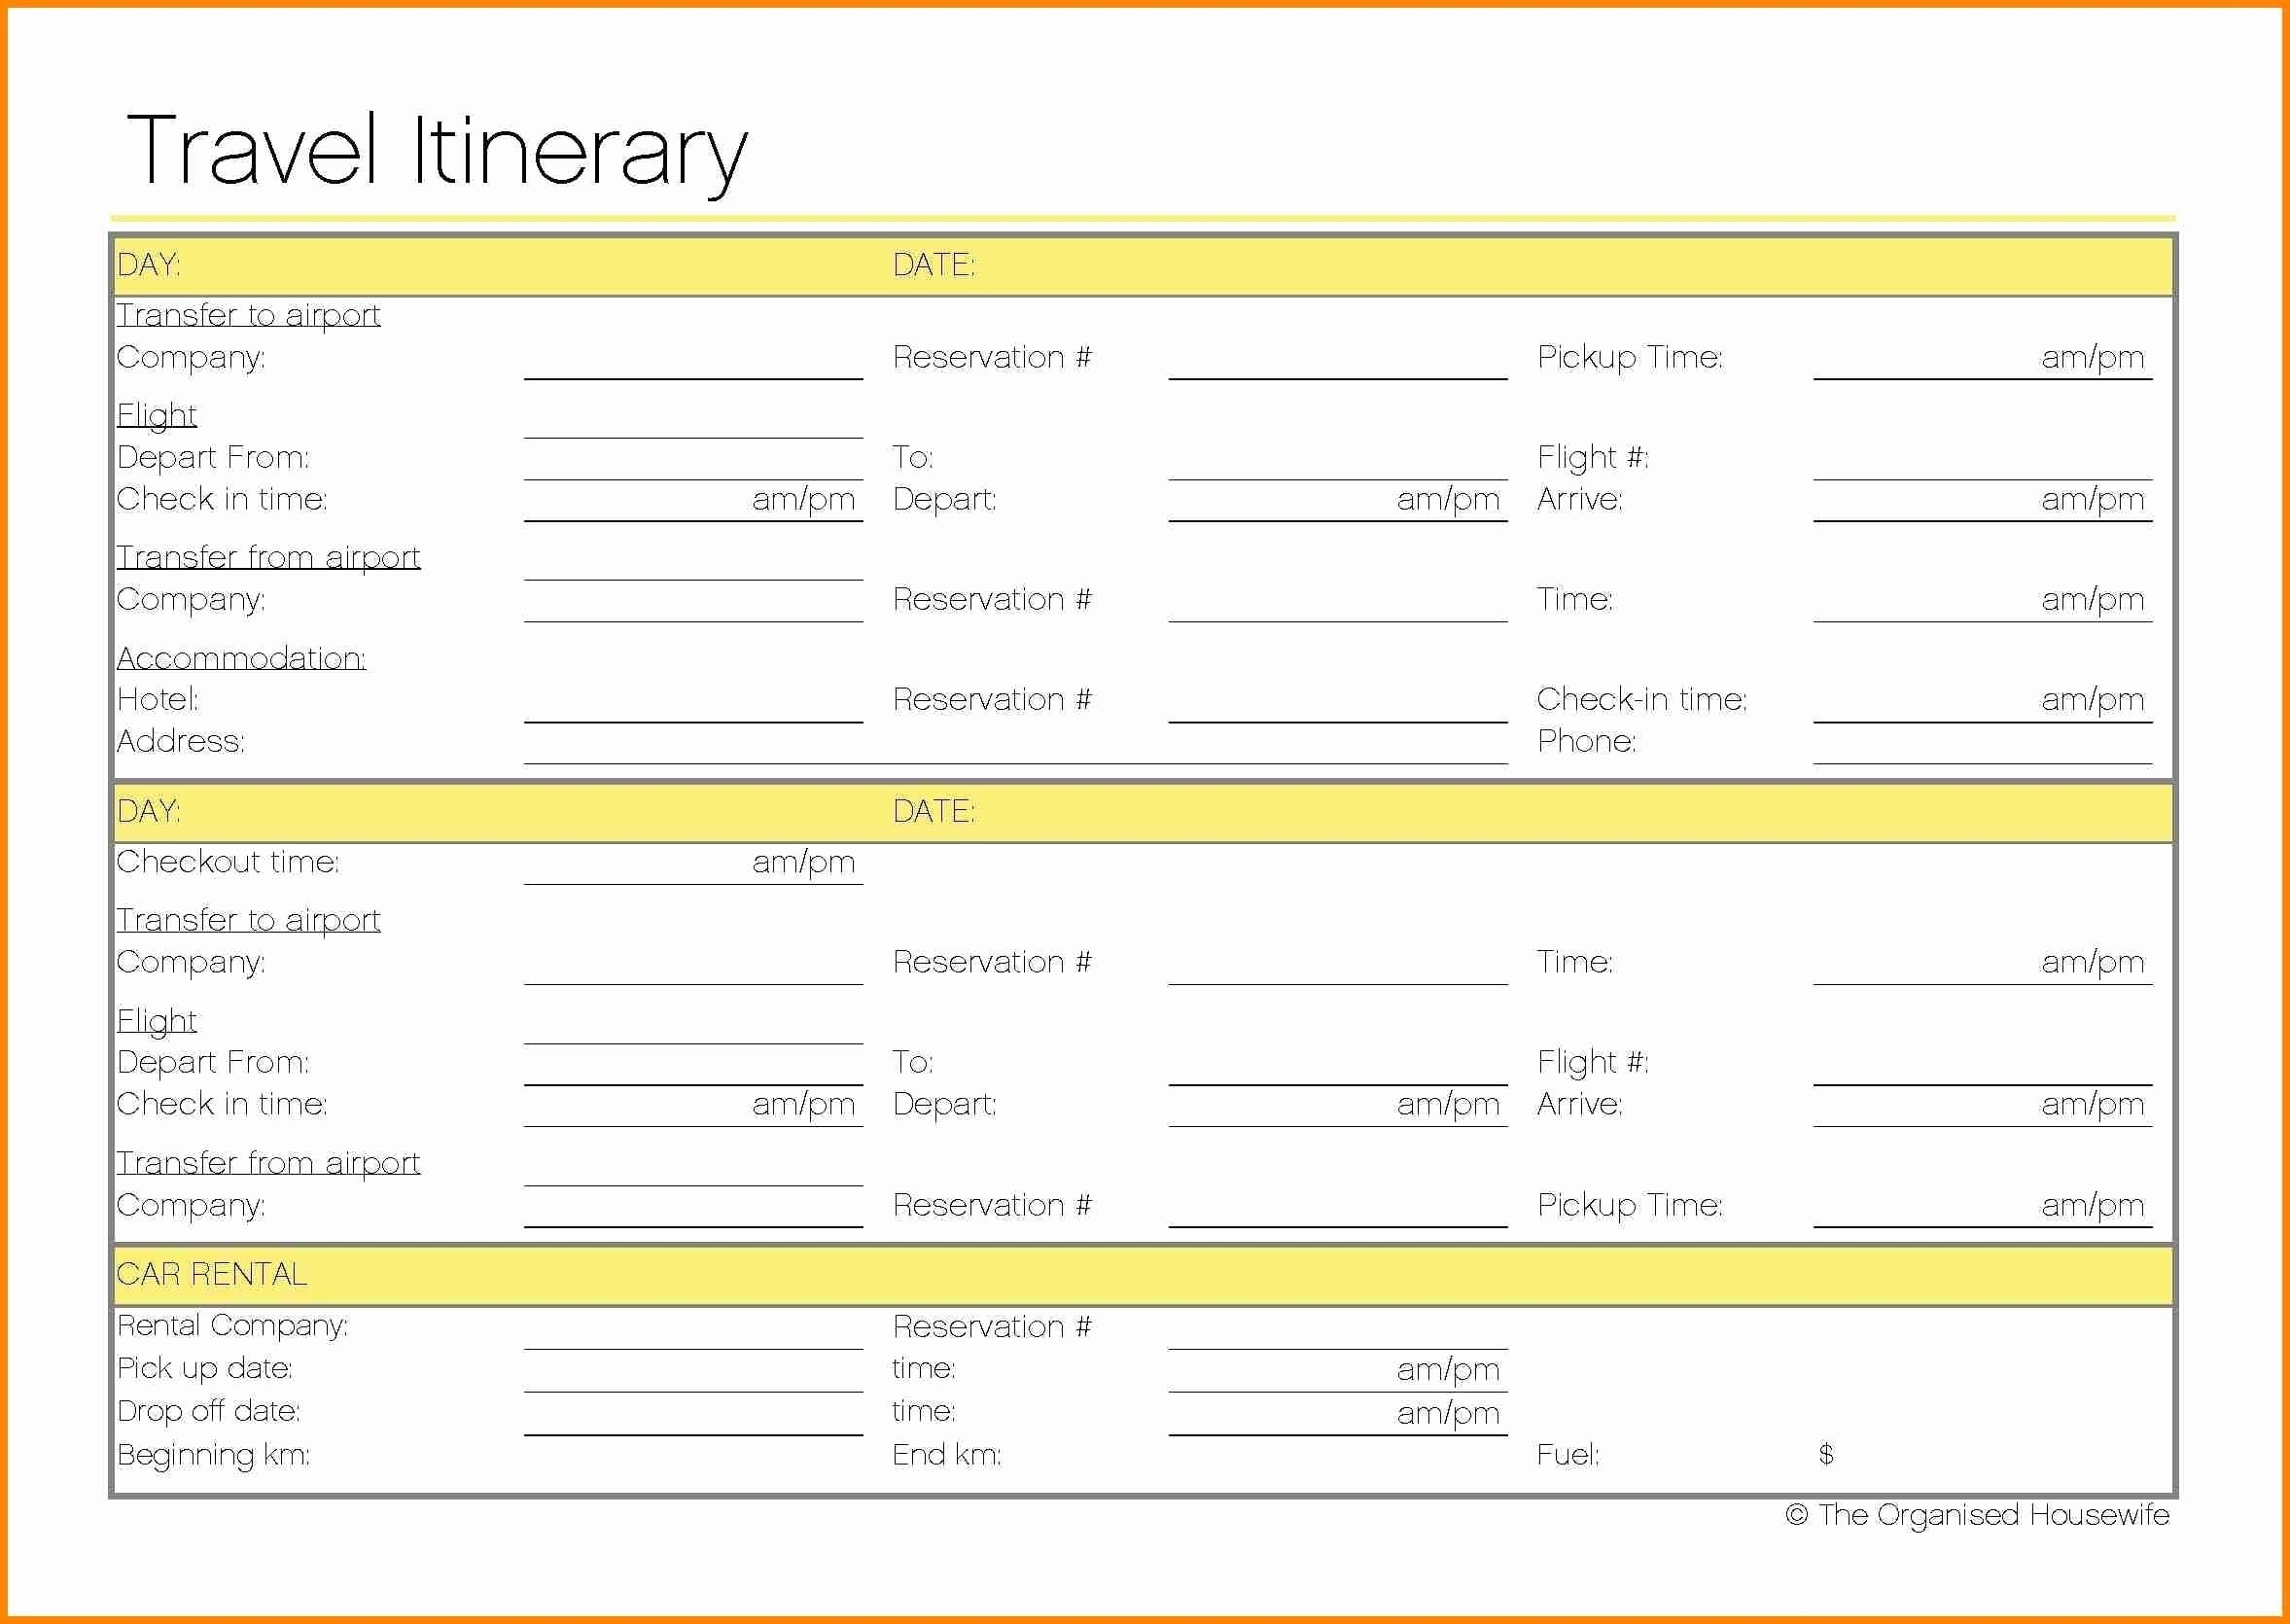 itinerary template doc   Boat.jeremyeaton.co